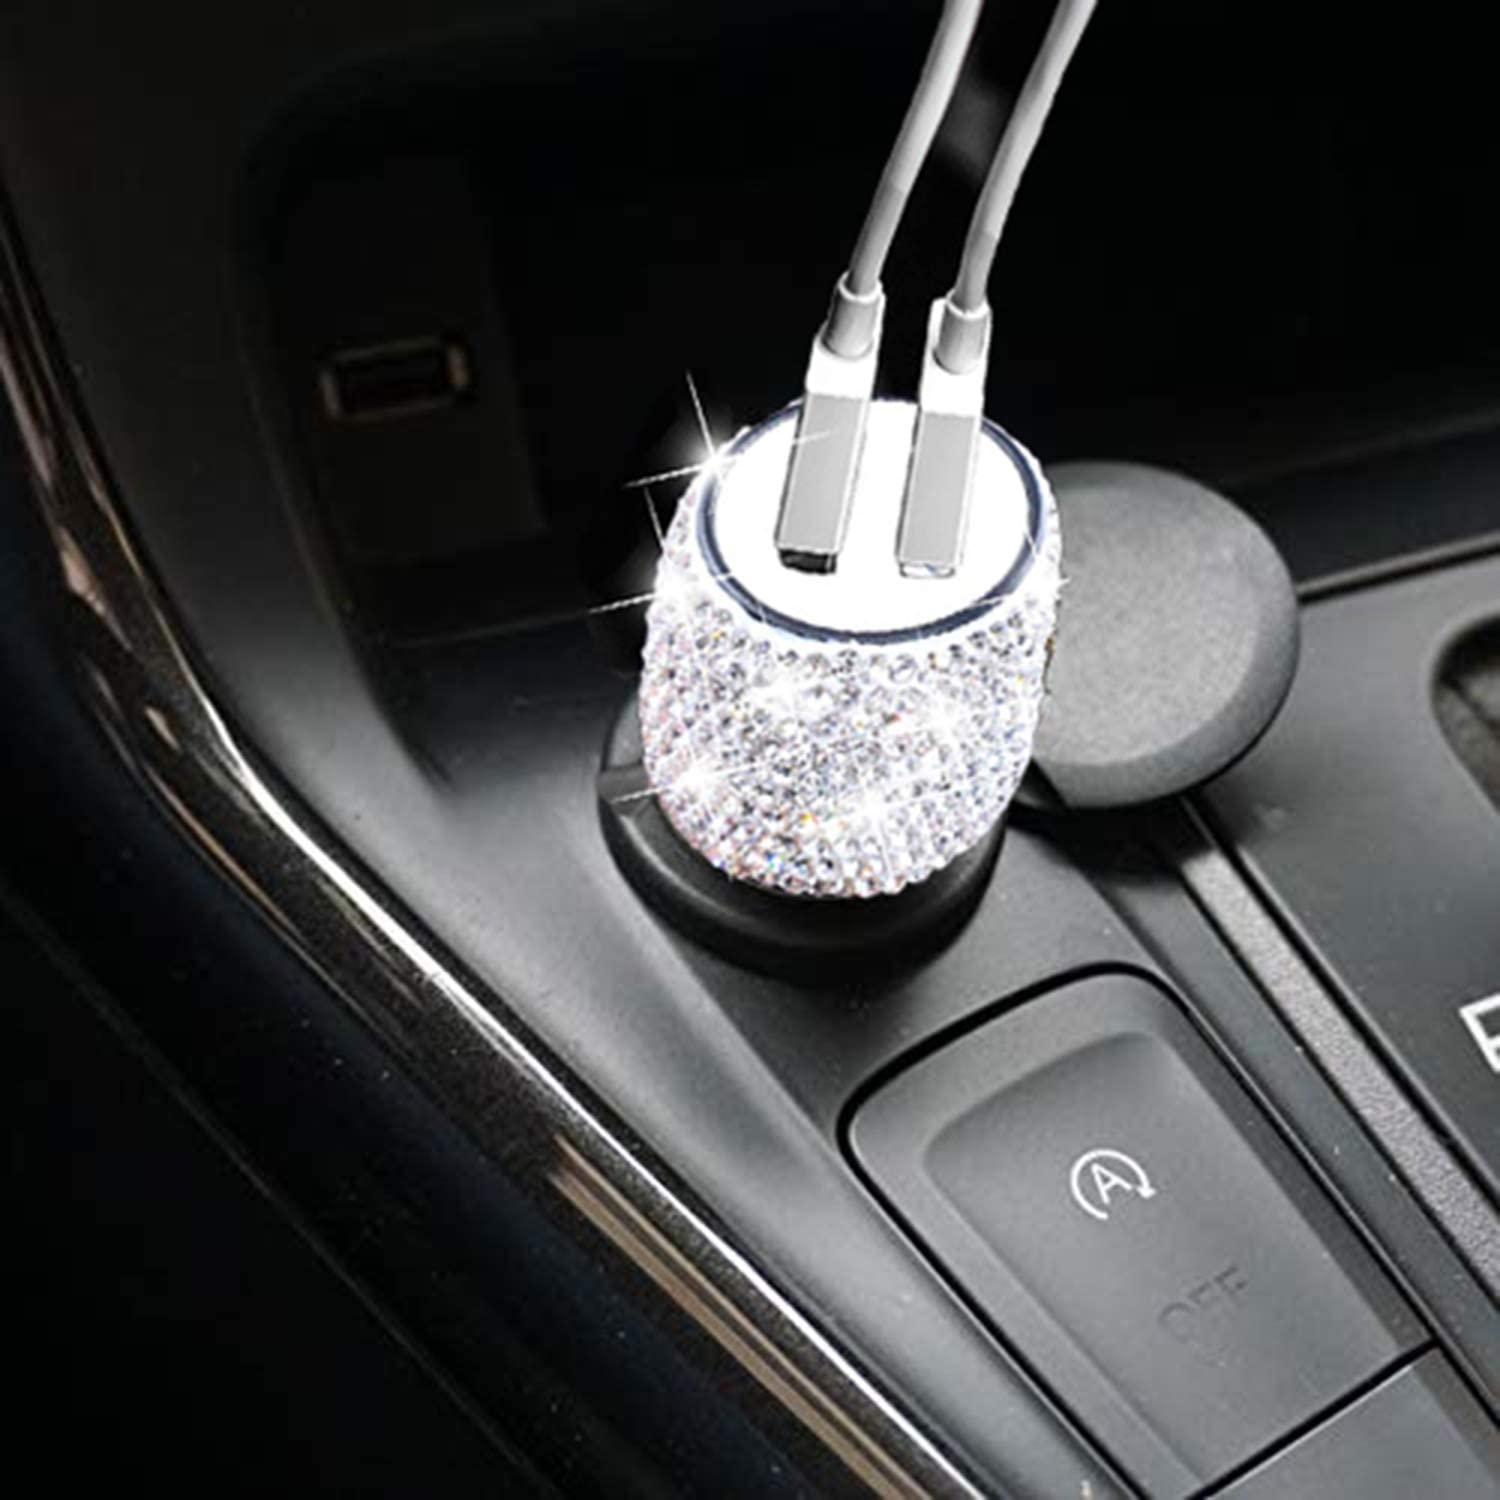 Dual USB Car Charger with Bling Bling Handmade Rhinestones Crystal, Car Decorations for Fast Charging, Car Decors for iPhone, iPad Pro/Air 2/Mini, Samsung Galaxy Note9/8/S9/S9+,LG, Nexus, HTC, etc